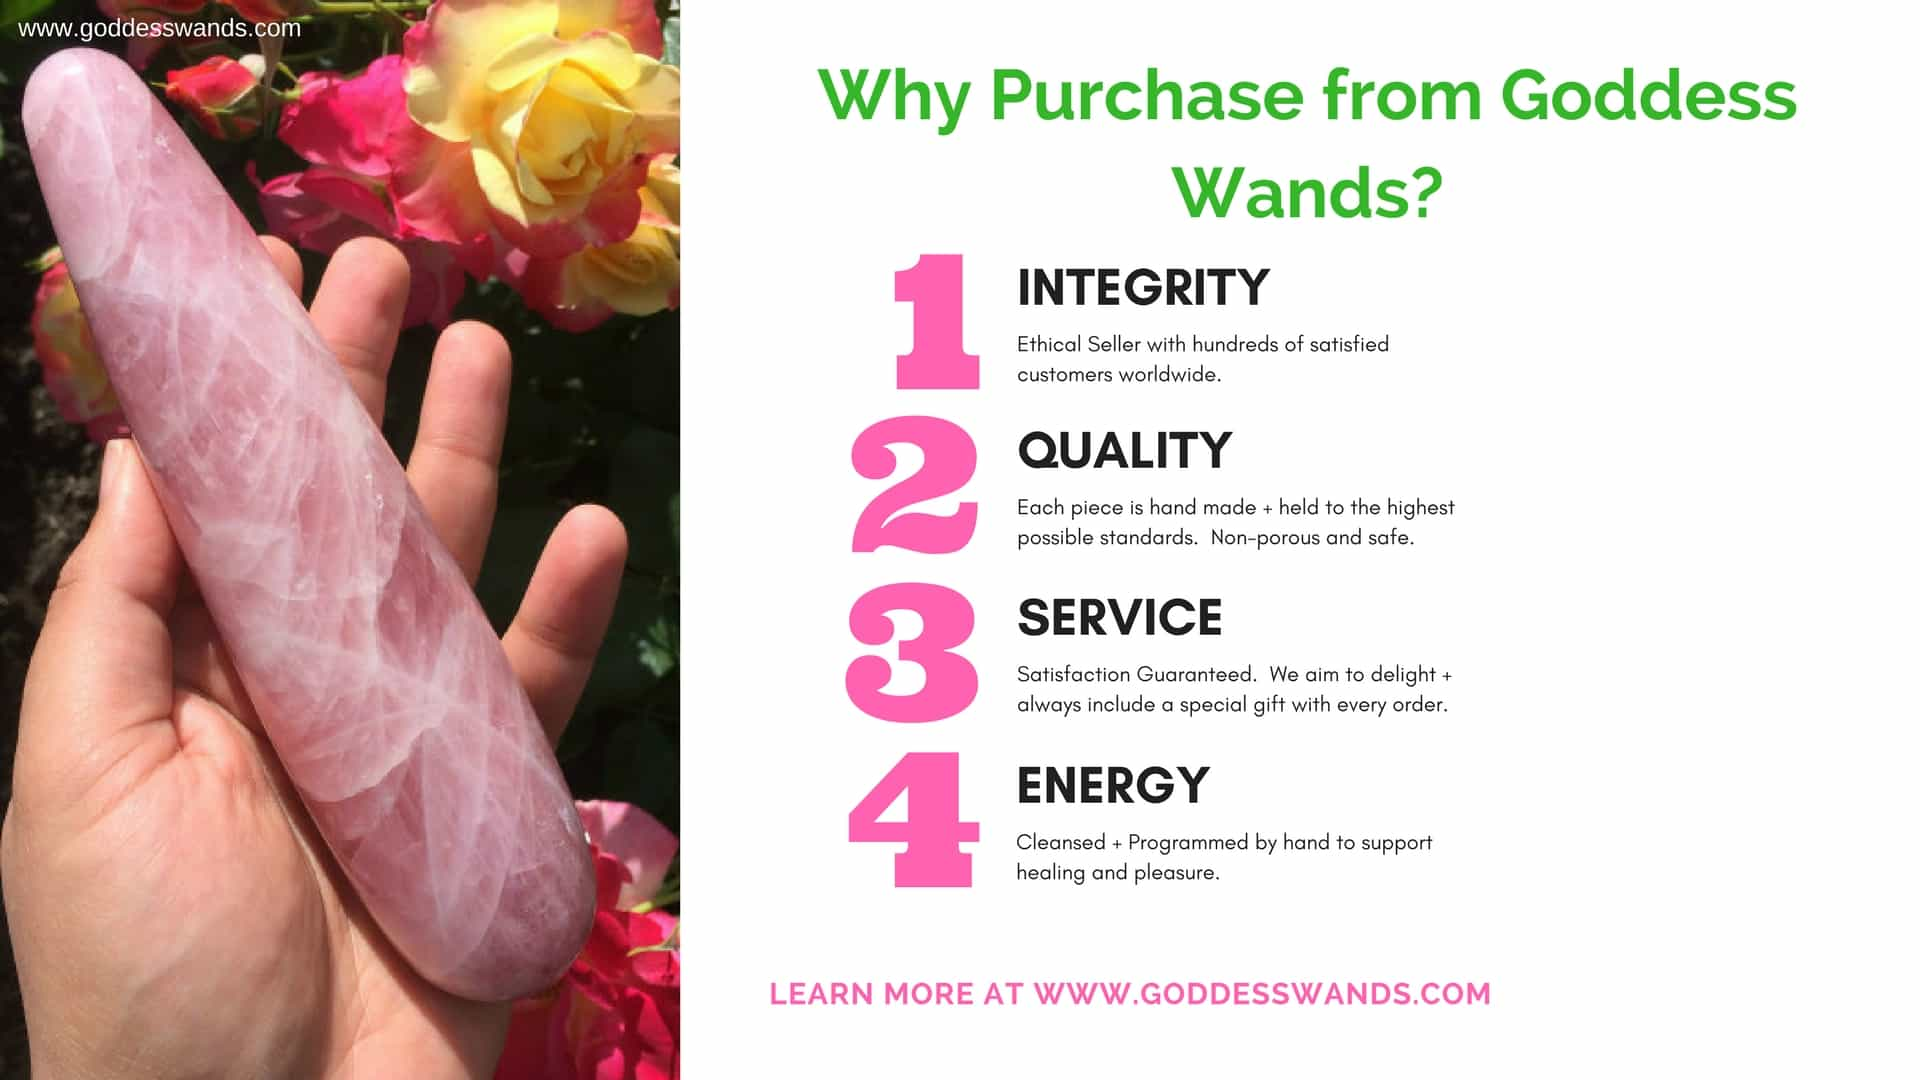 yoni wands canada, yoni wand, pleasure wand, gemstone dildo, canada, shakti wand, sacred sex, buy yoni wand, buy gemstone dildo, rose quartz dildo, extra large dildo, crystal dildo, rose quartz g-spot dildo, rose quartz dildo, buy yoni wands canada, gemstone dildo, yoni wand, goddess wand, g spot dildo, shakti wand, pleasure wand, goddesswands, goddess wands, Krystle's Crystals